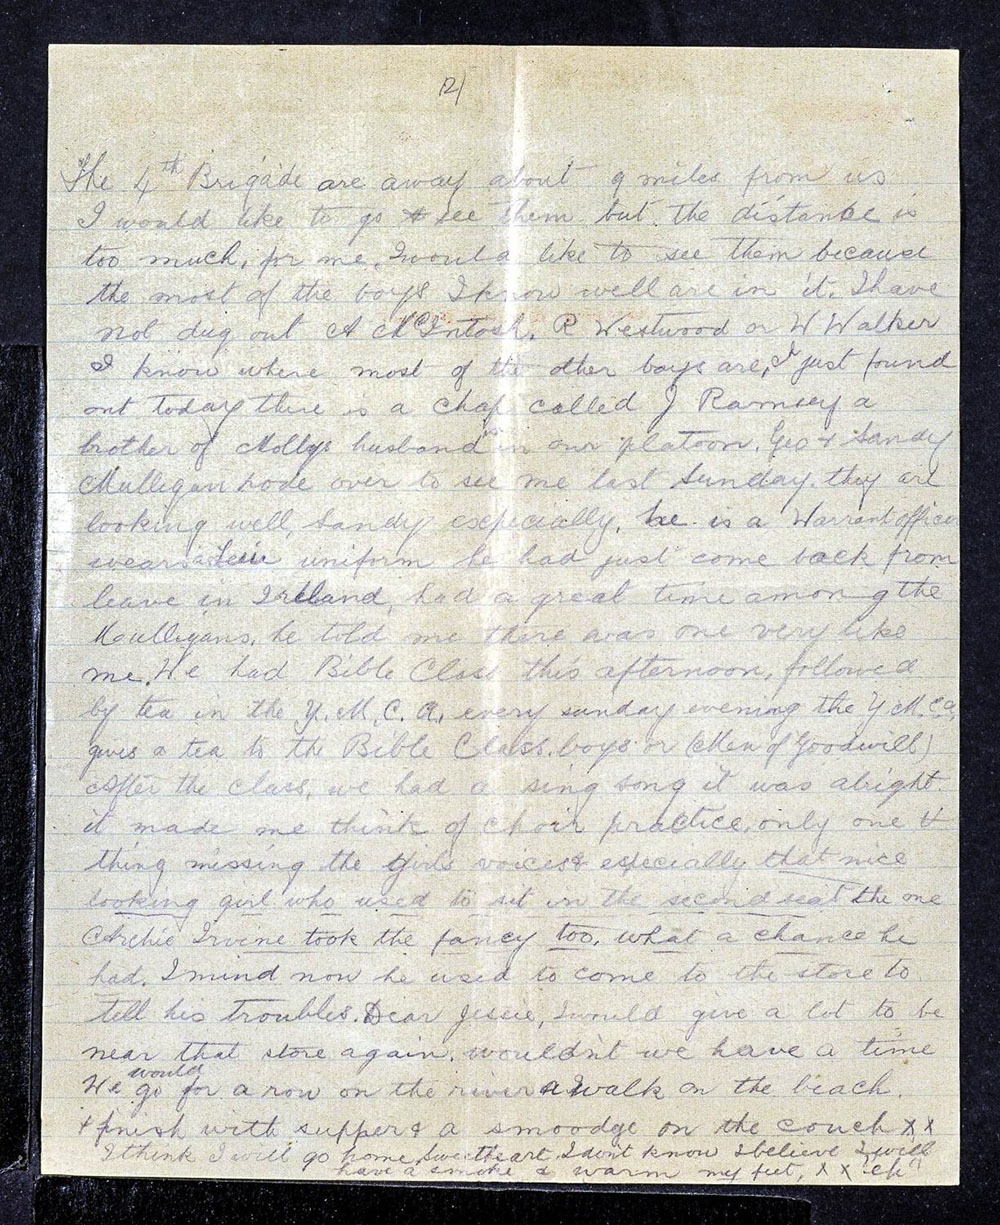 Alexander Mee Letters to Jessie - 23 September 1917 - Page 2